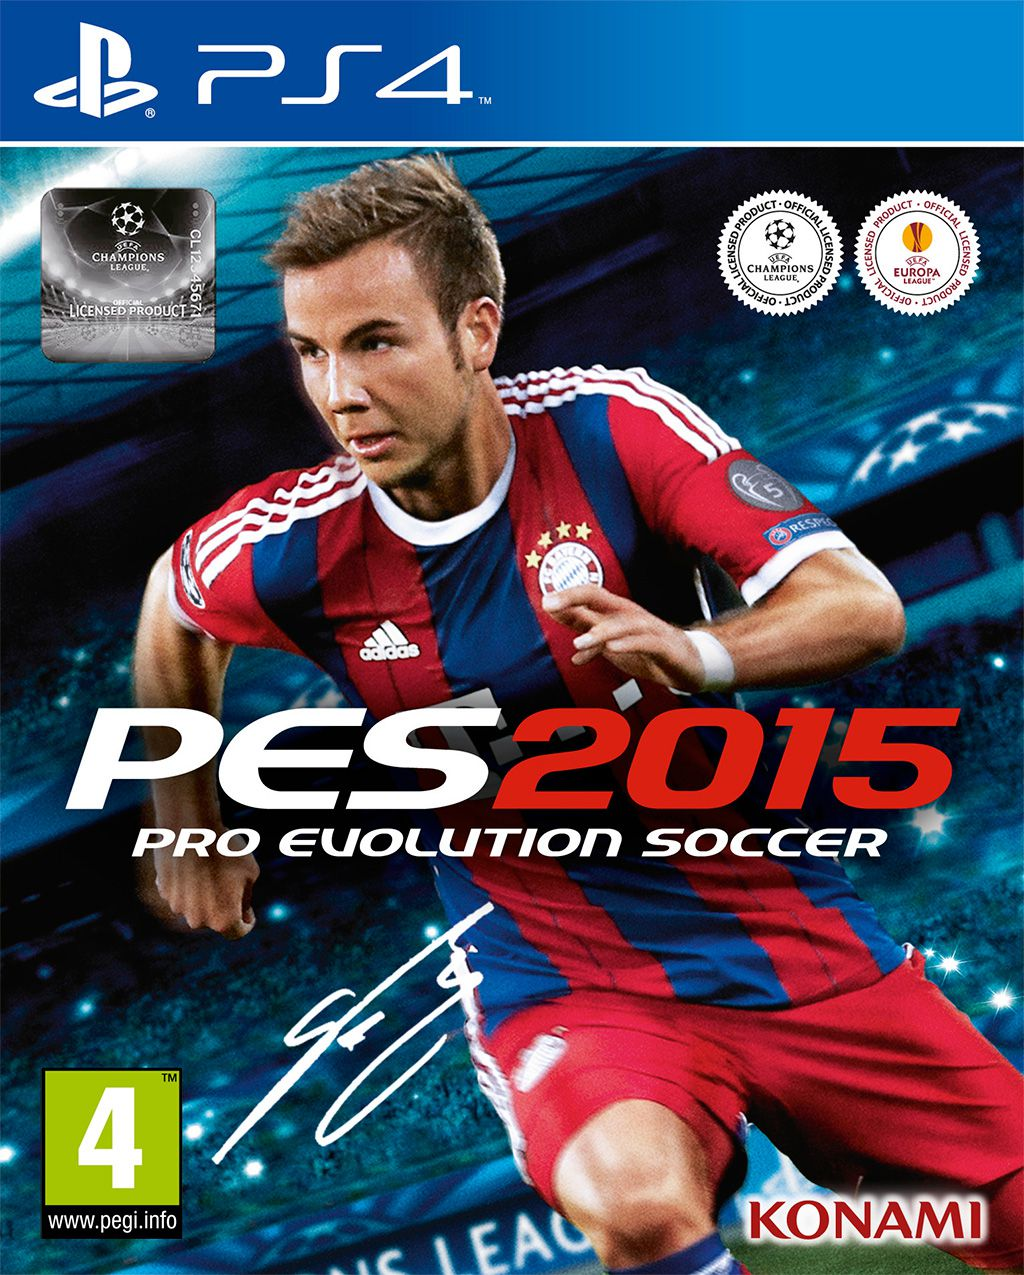 pes-2015-box-art-ps4_1024.0.jpg